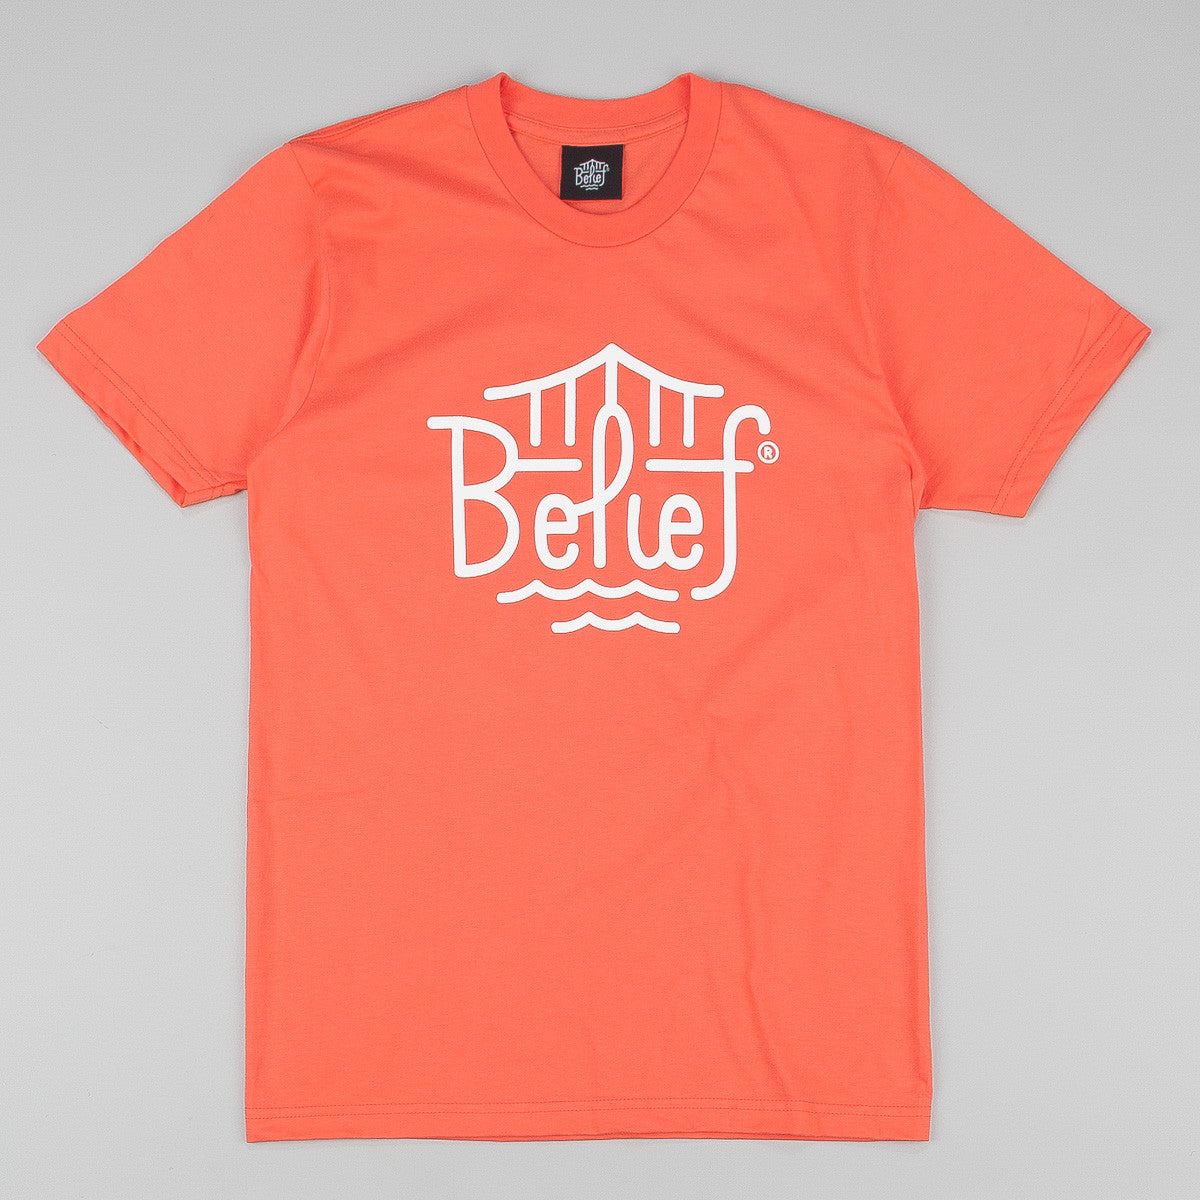 Belief Triboro T-Shirt - Coral